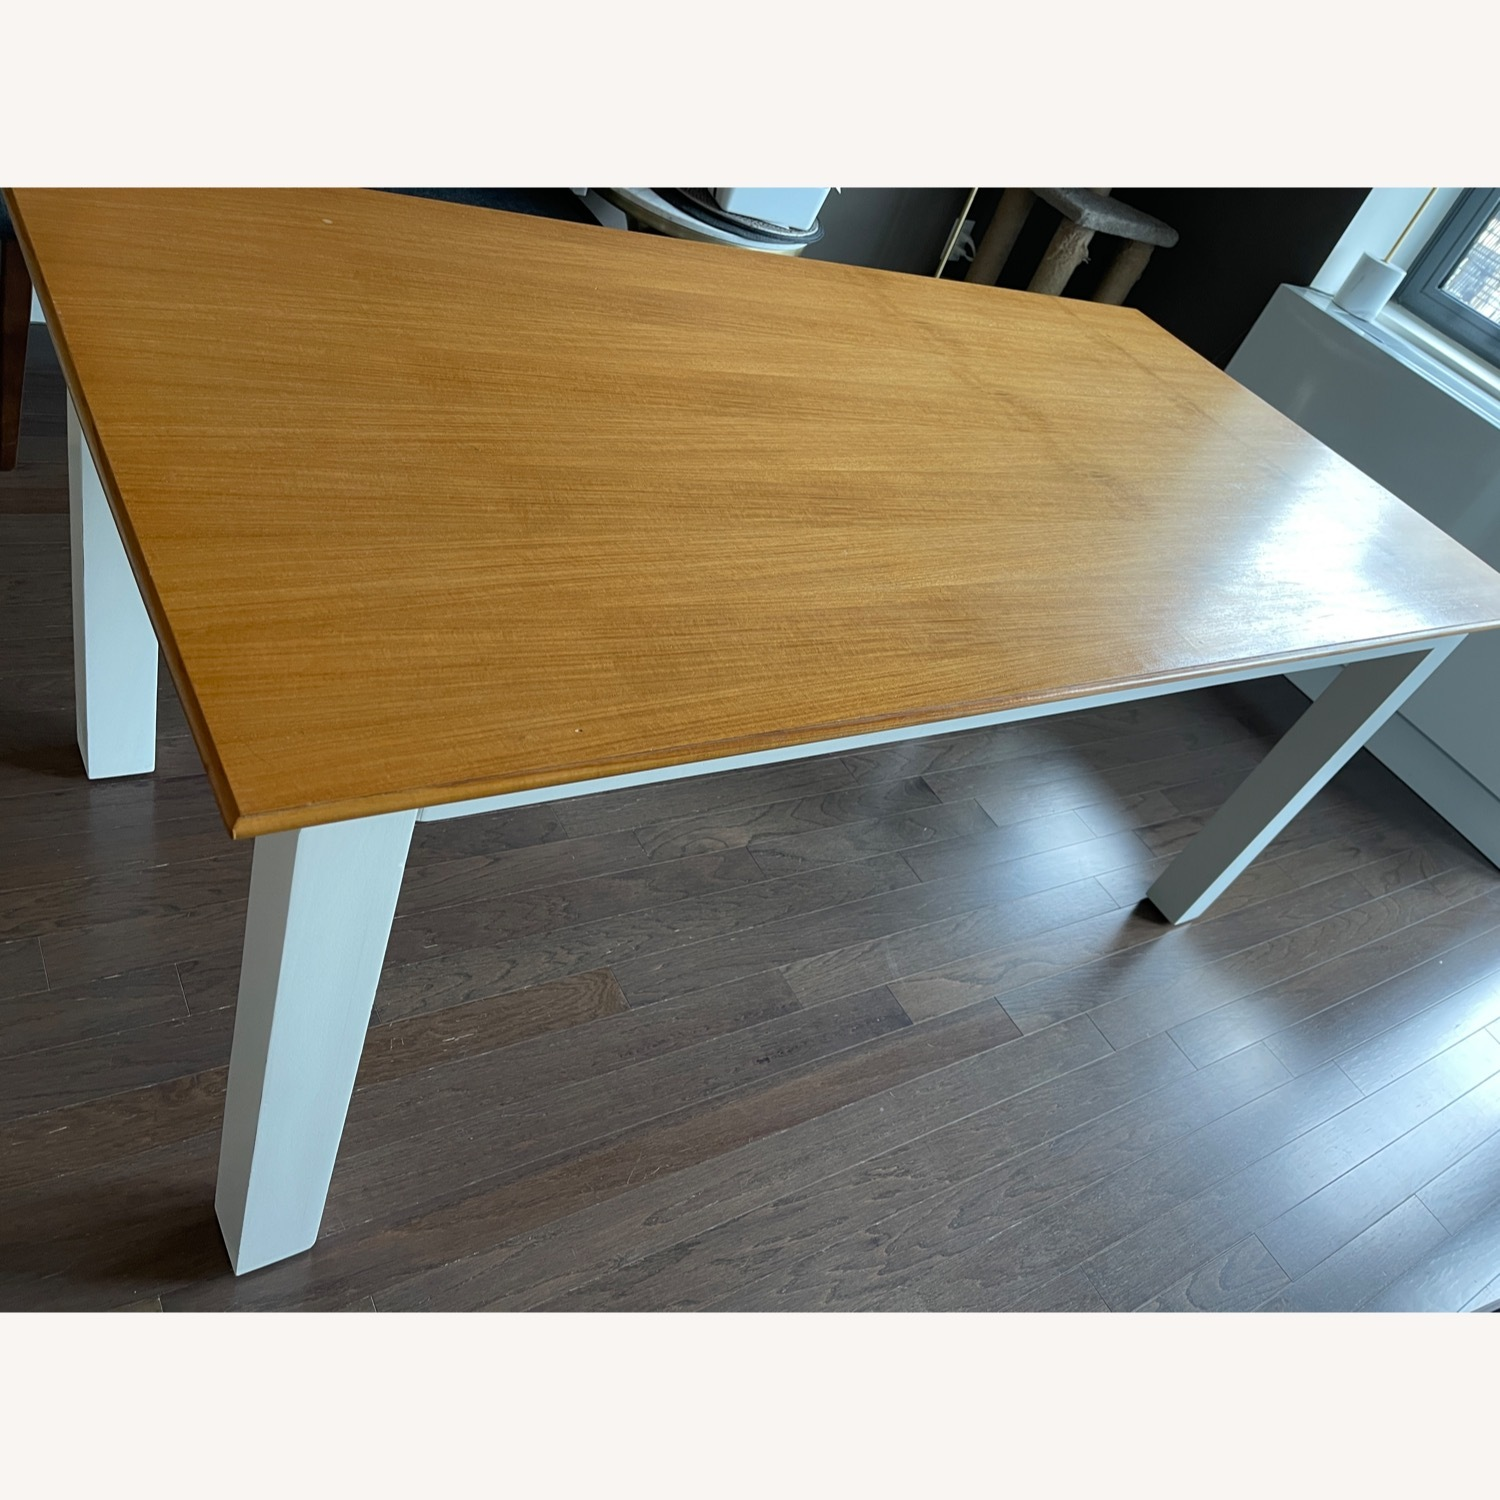 Solid Wood Dining Table 70' - EU import - image-2